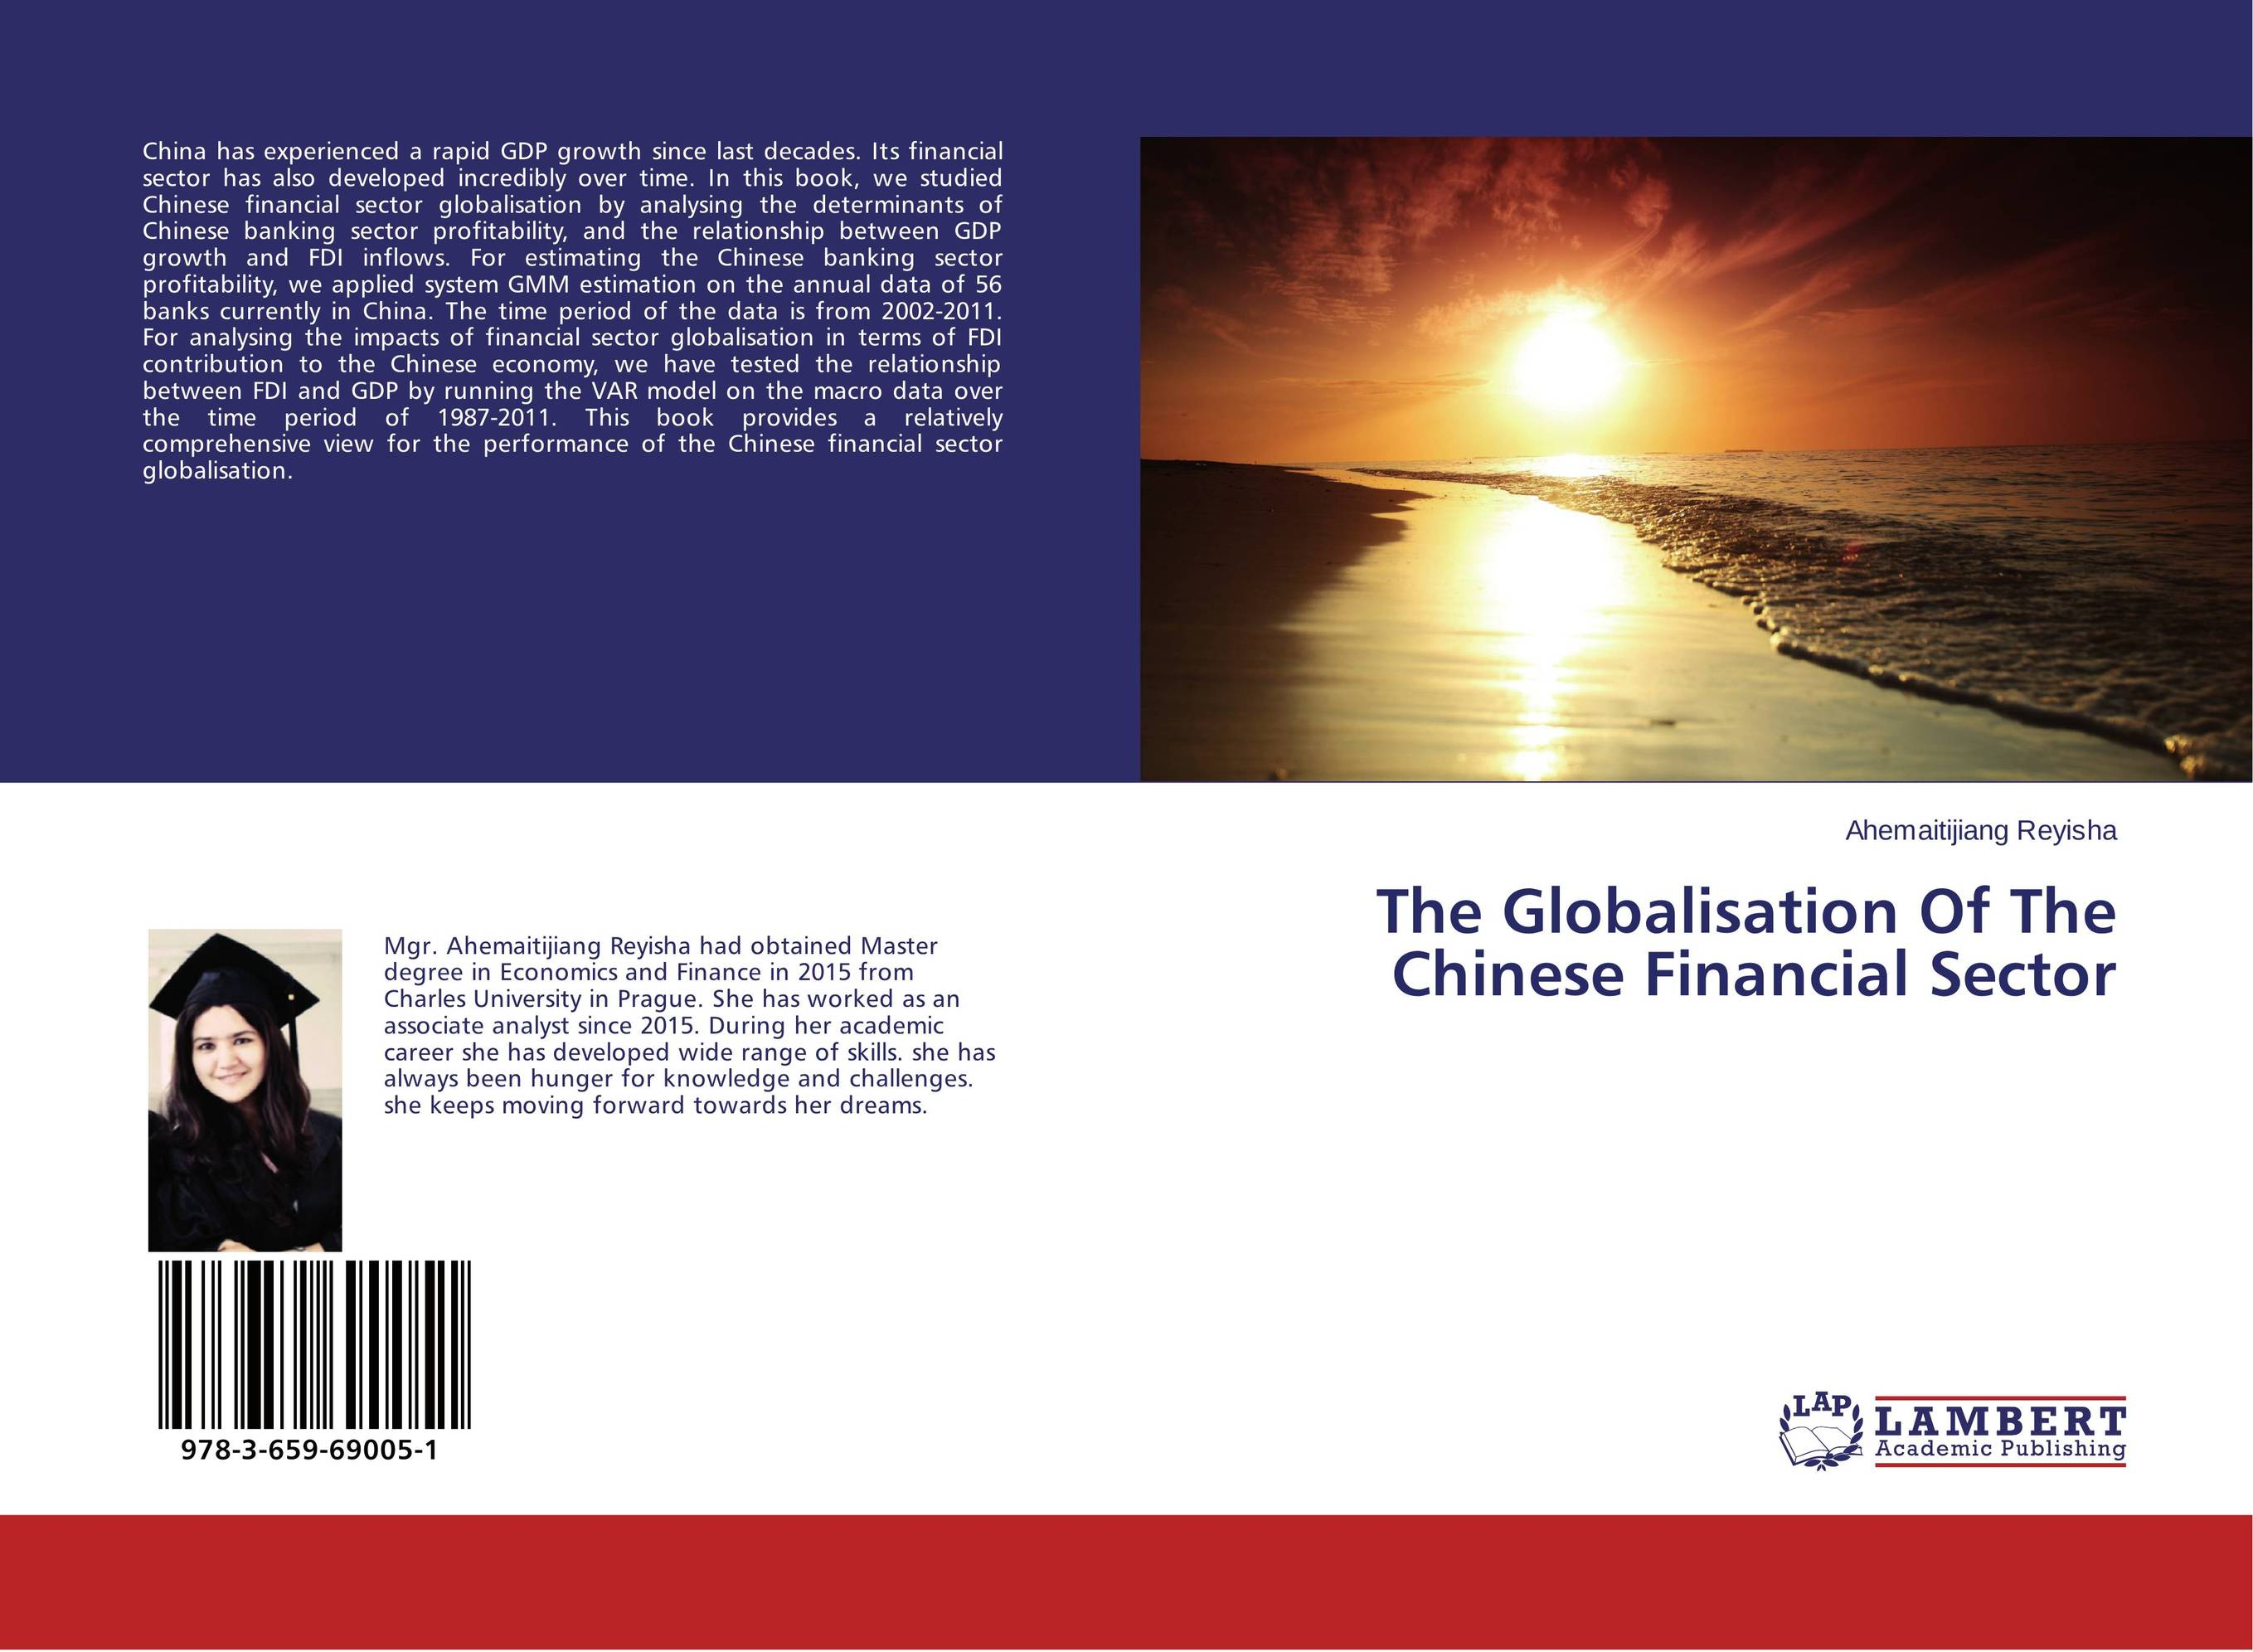 The Globalisation Of The Chinese Financial Sector on a chinese screen